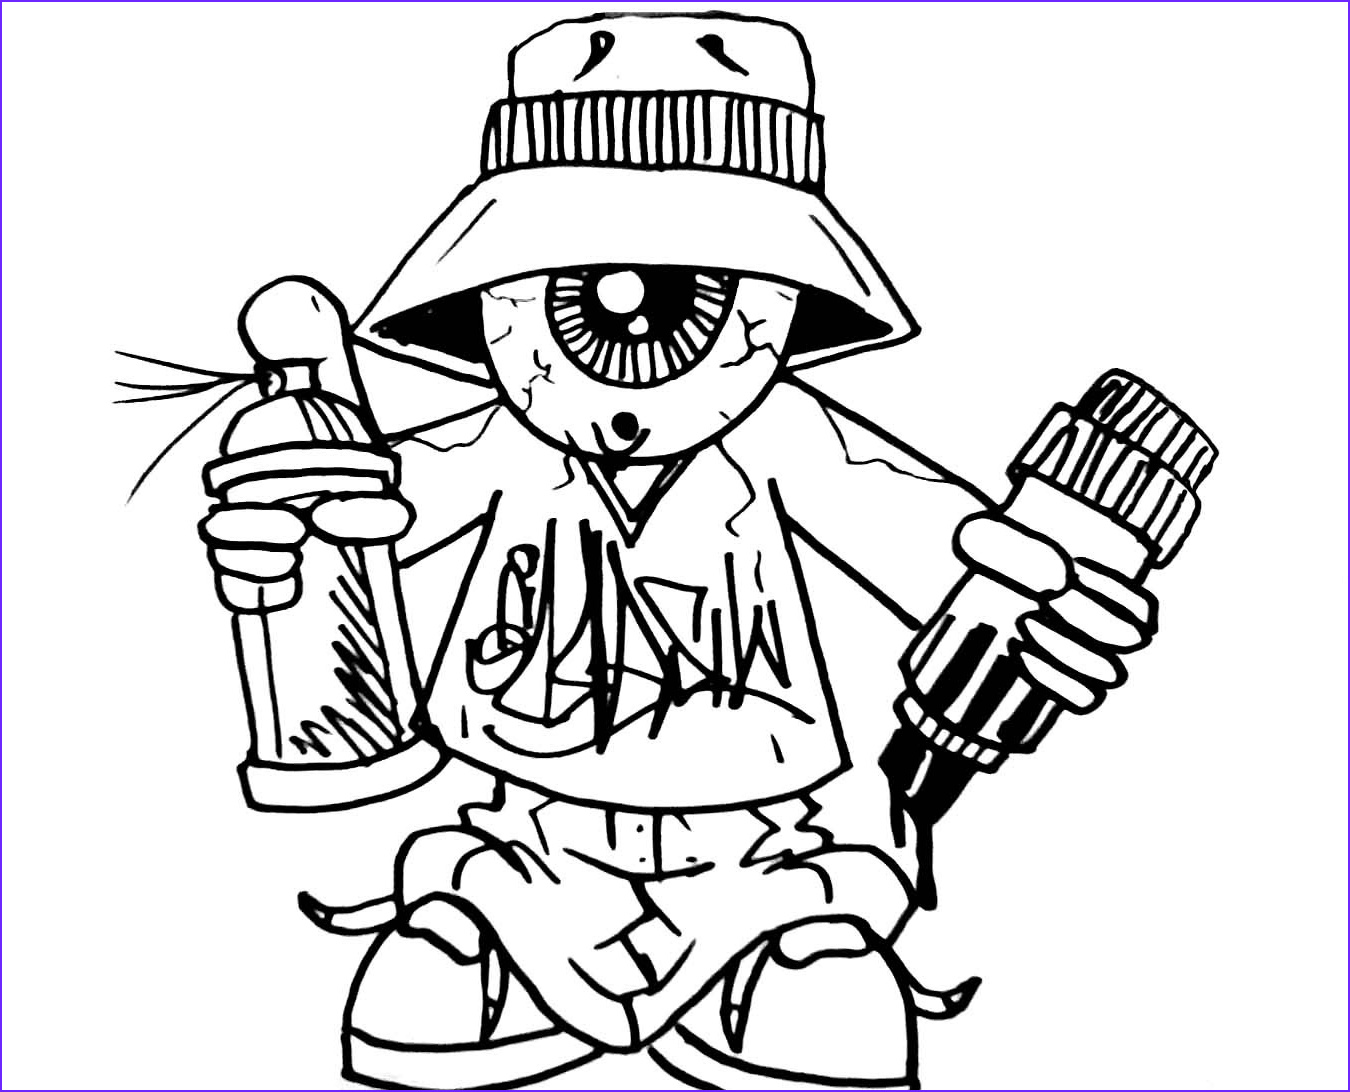 Graffiti Coloring Pages New Stock Graffiti Coloring Pages for Teens and Adults Best